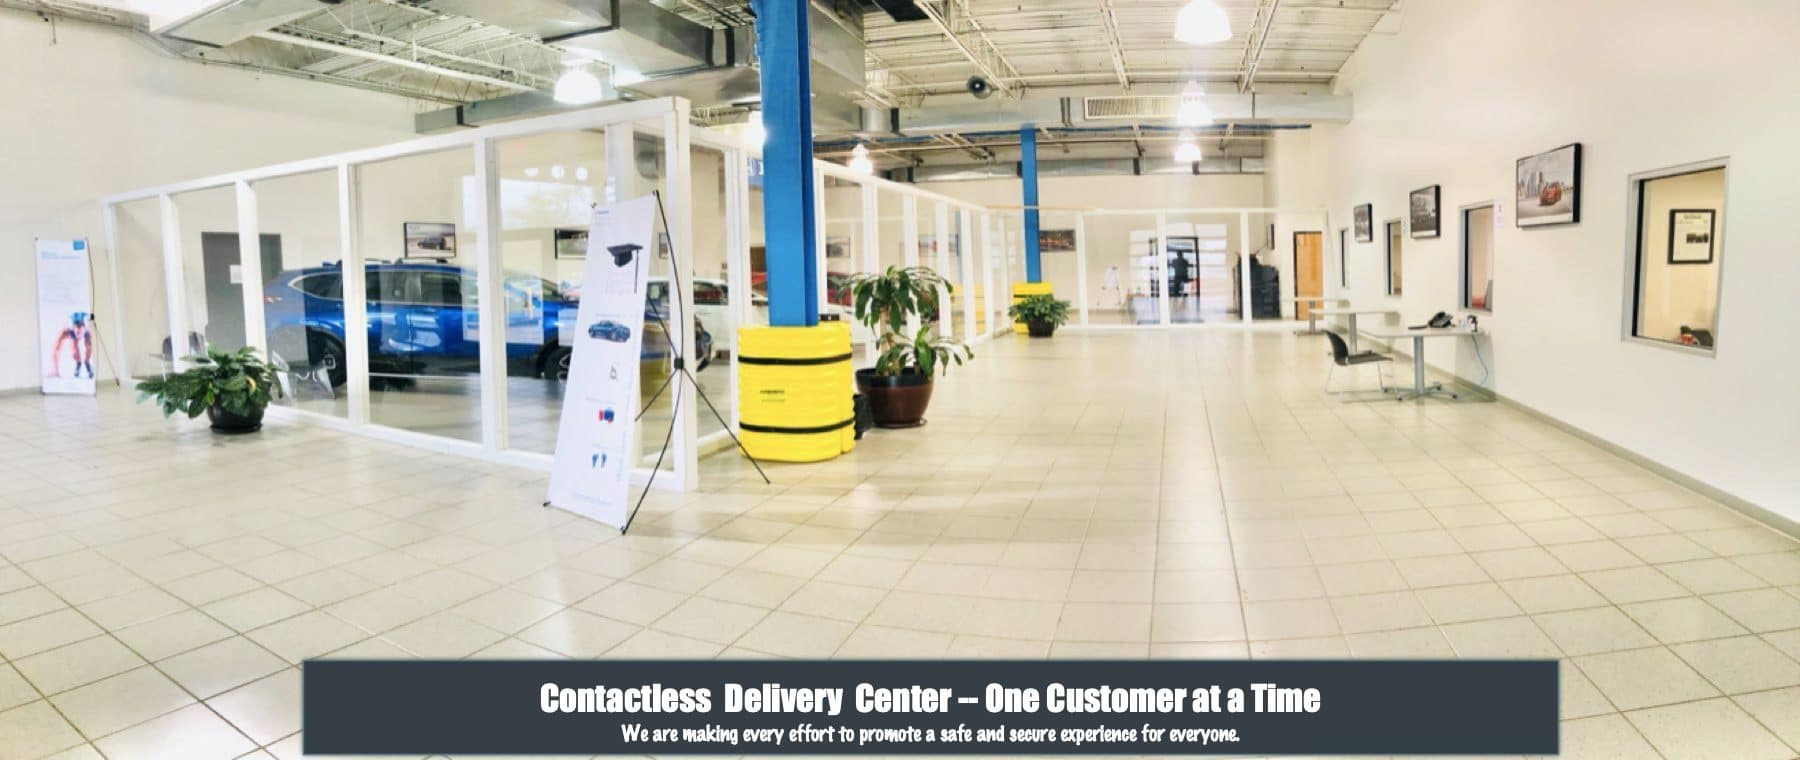 Contactless Delivery Center